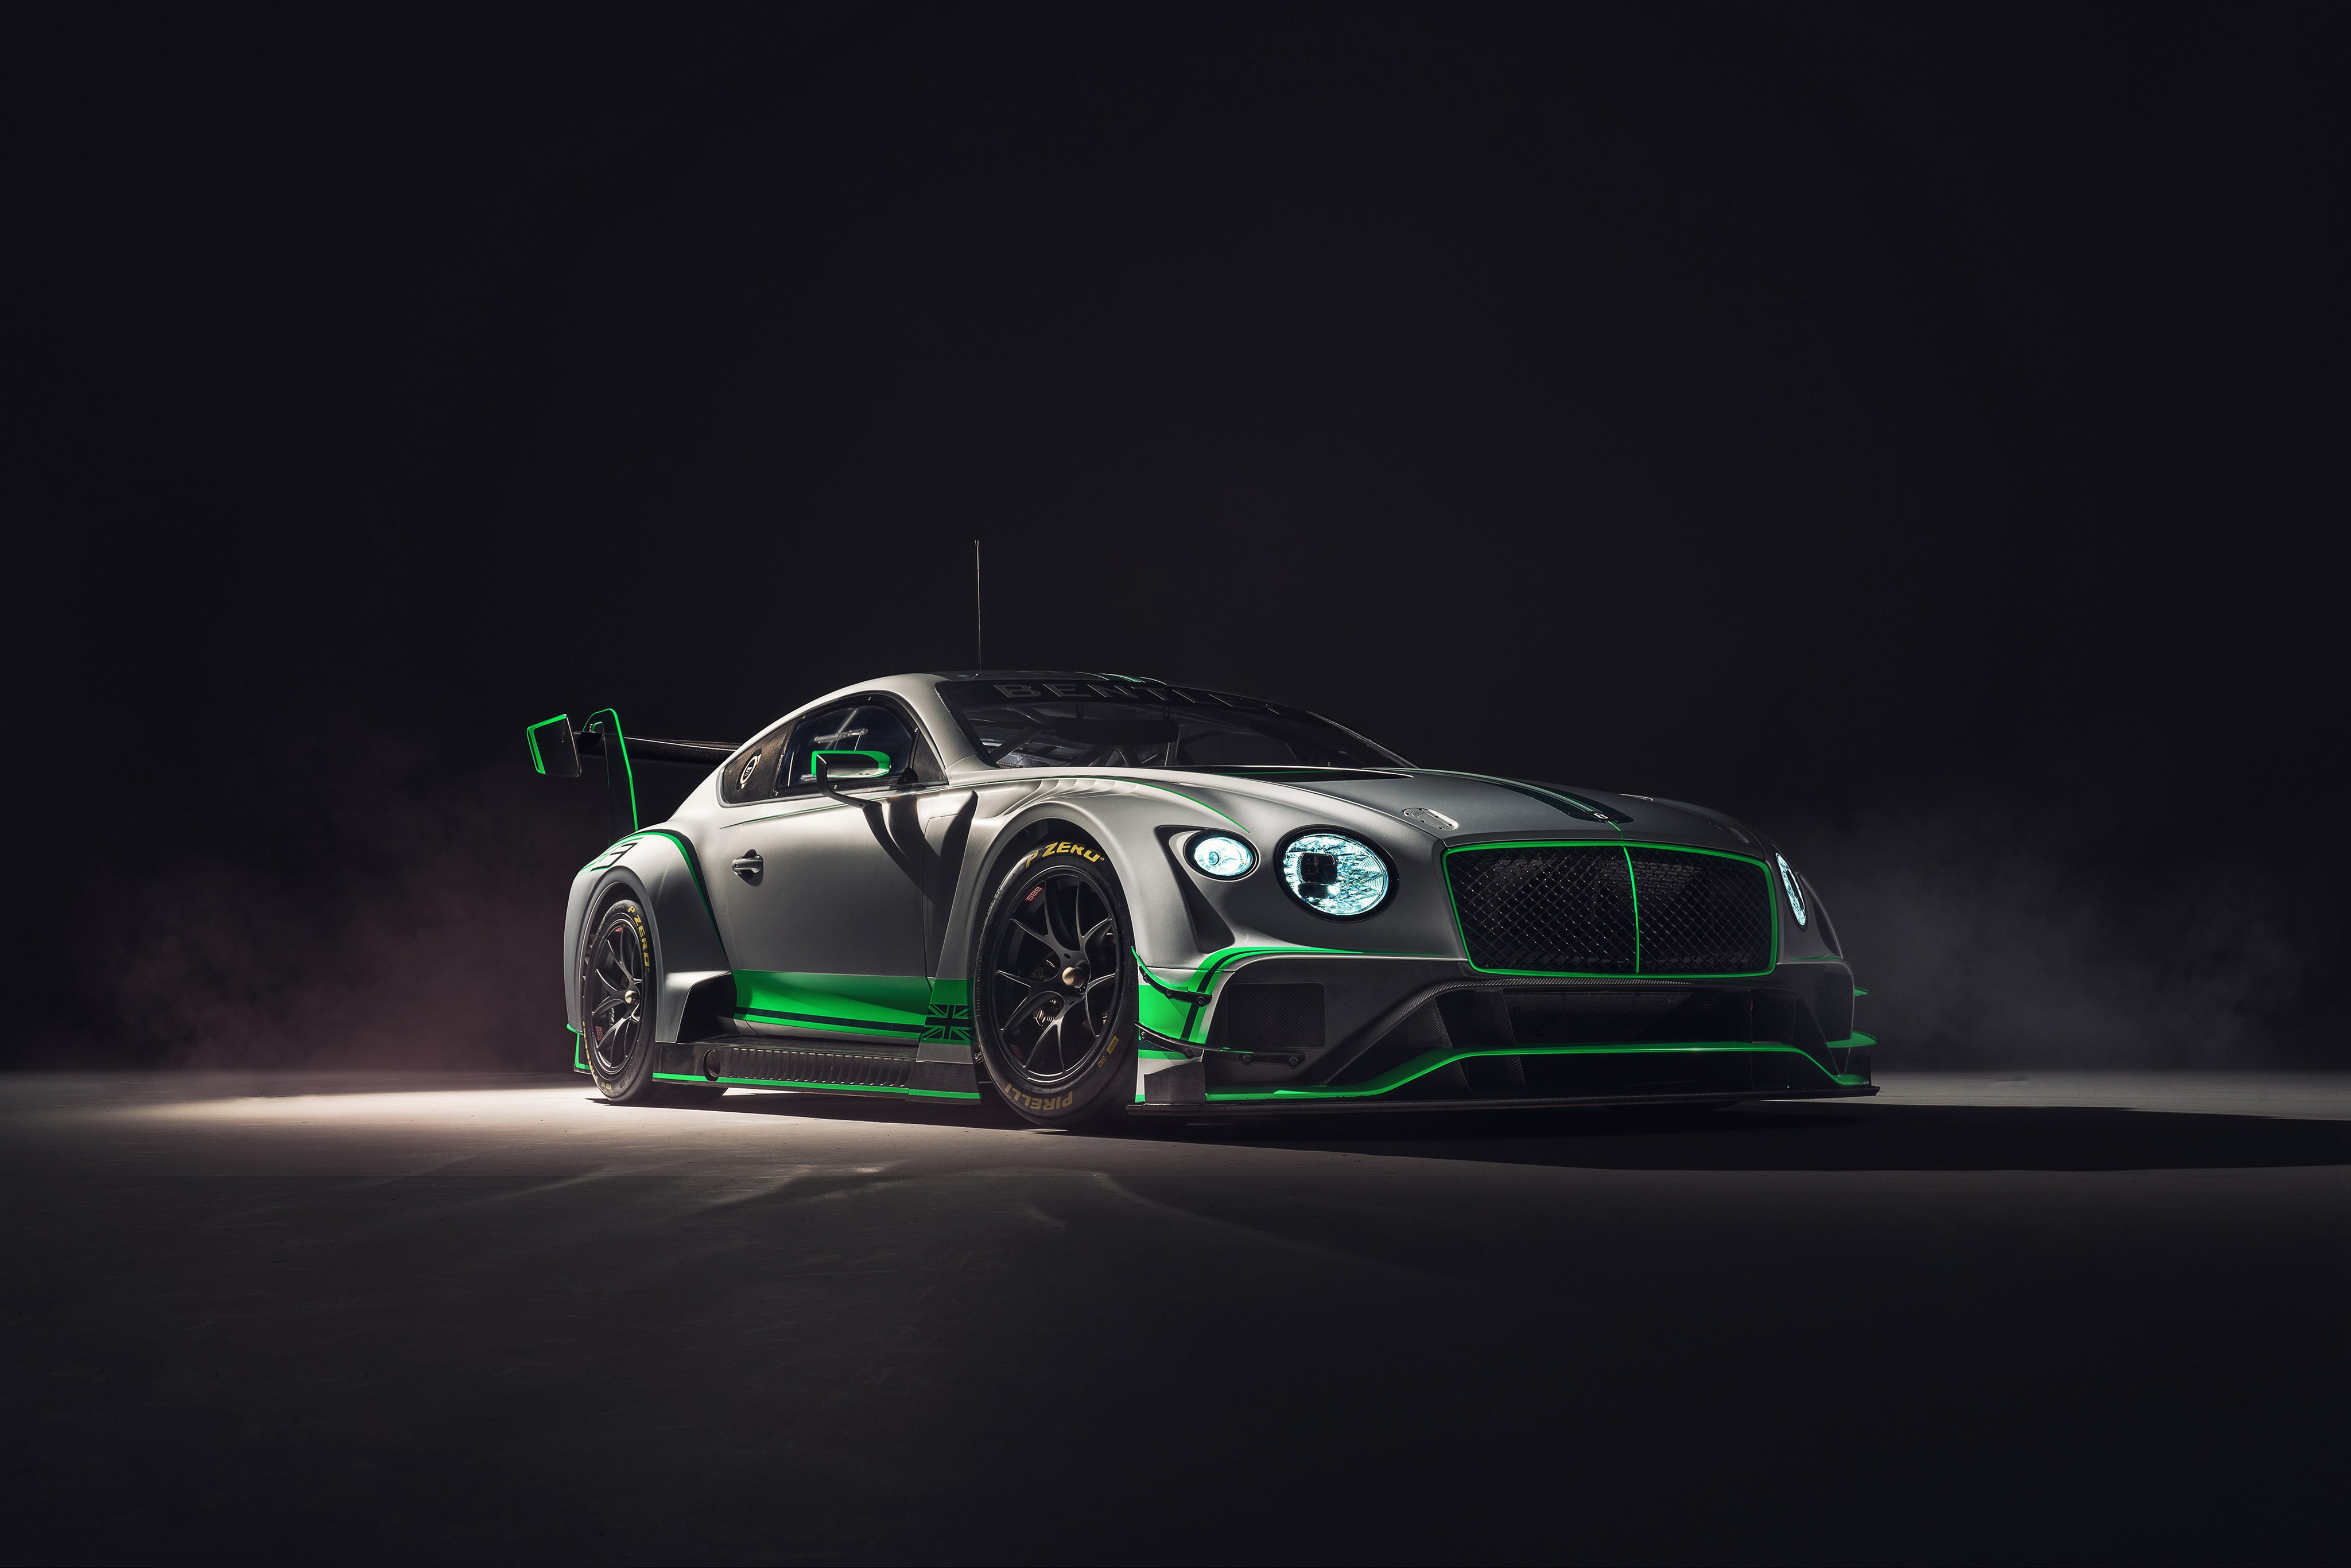 Wallpaper Bentley Continental Gt3 2018 Cars 4k Cars Amp Bikes 16528